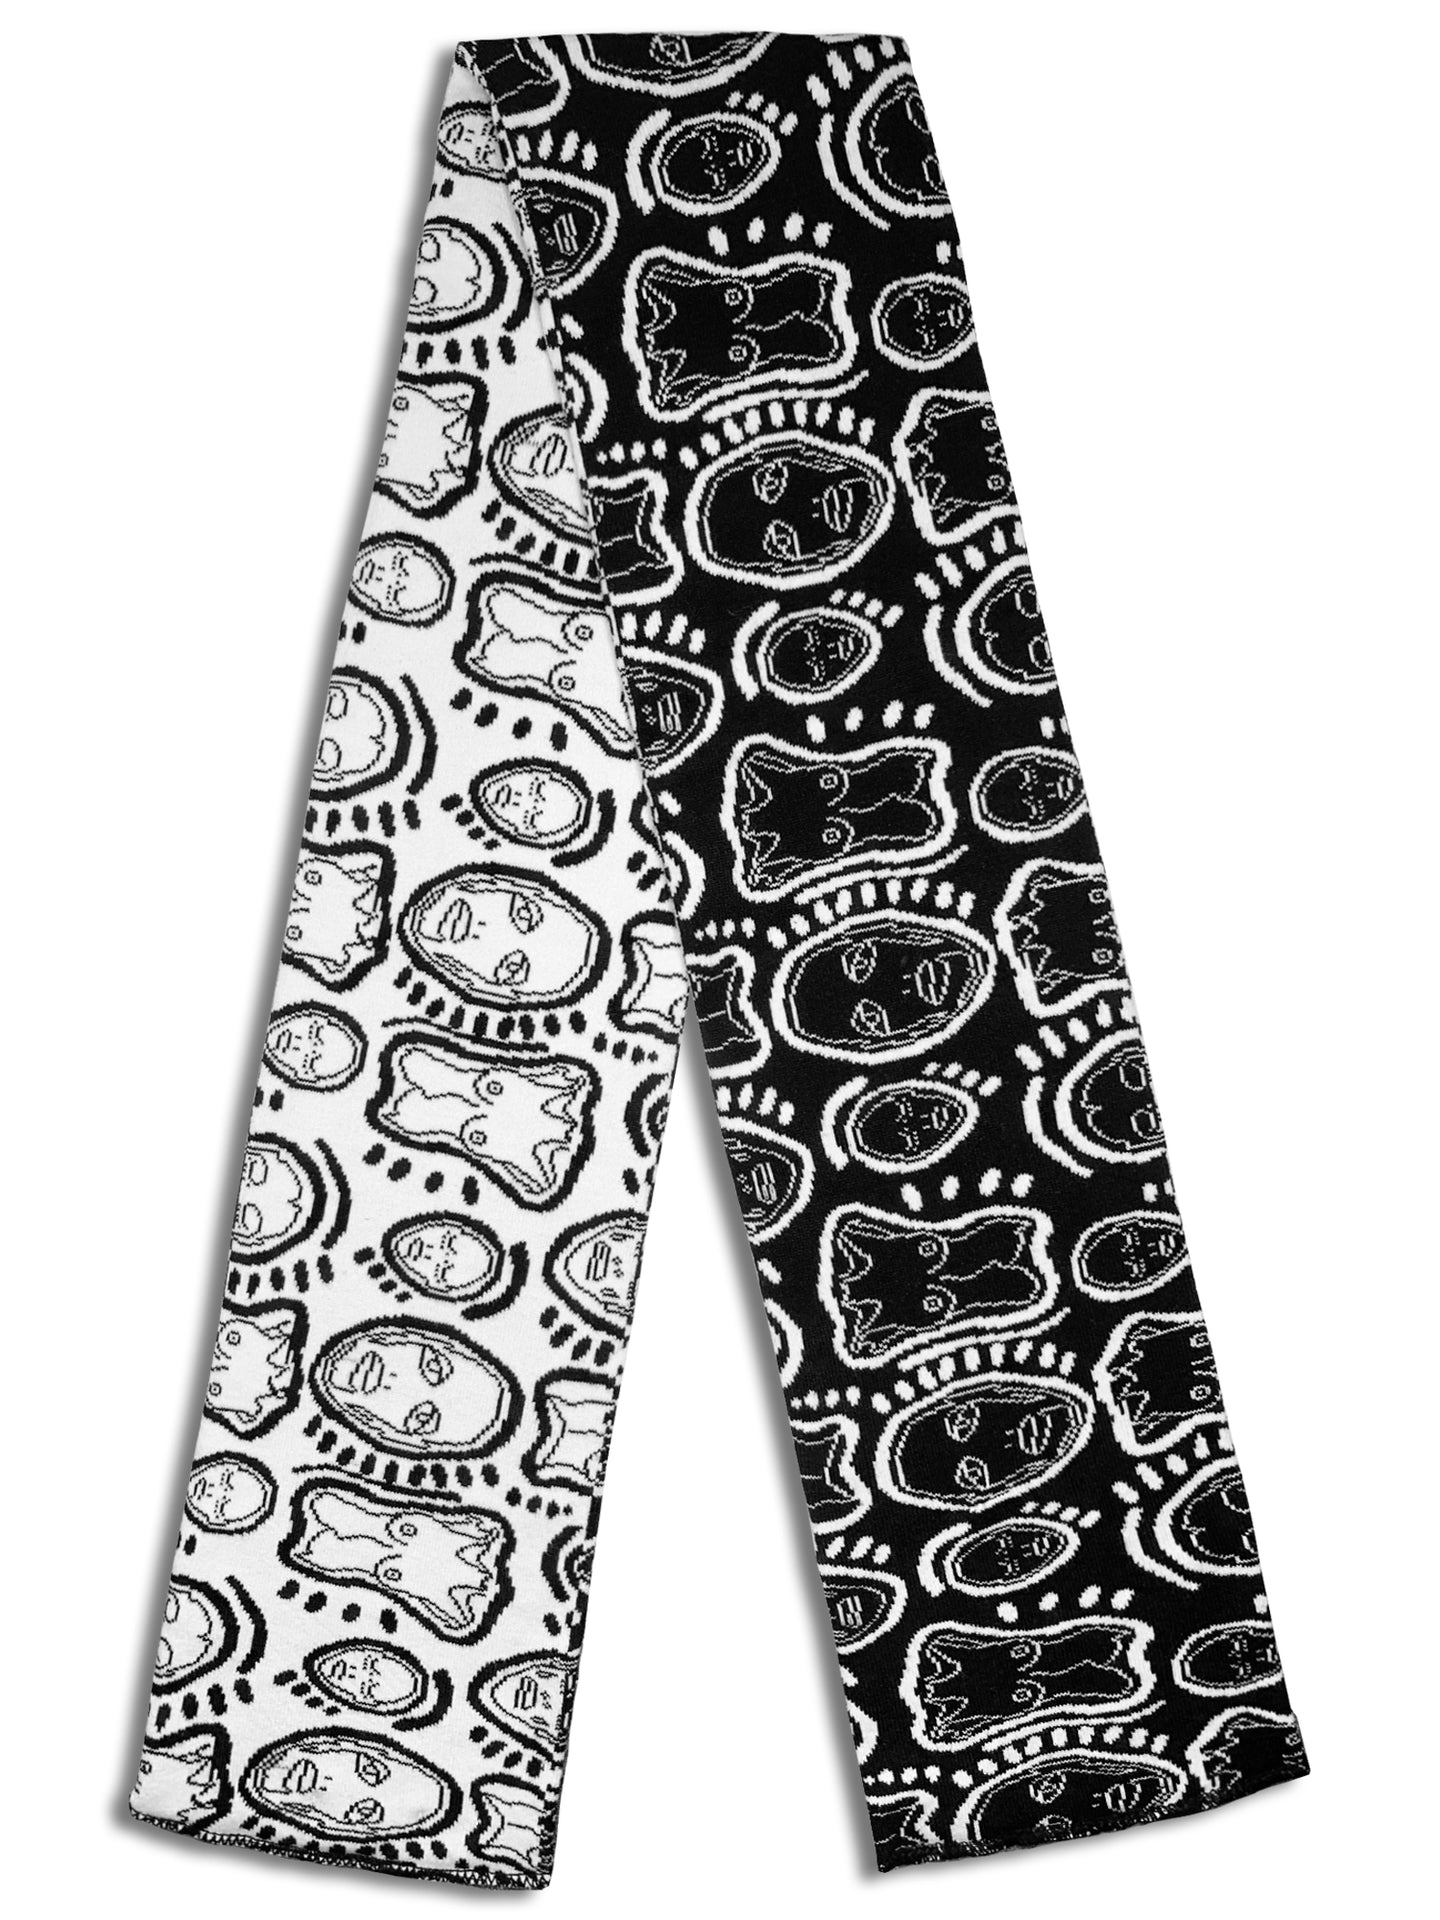 'All Over You' Reversible Knit Scarf - Patrick Church